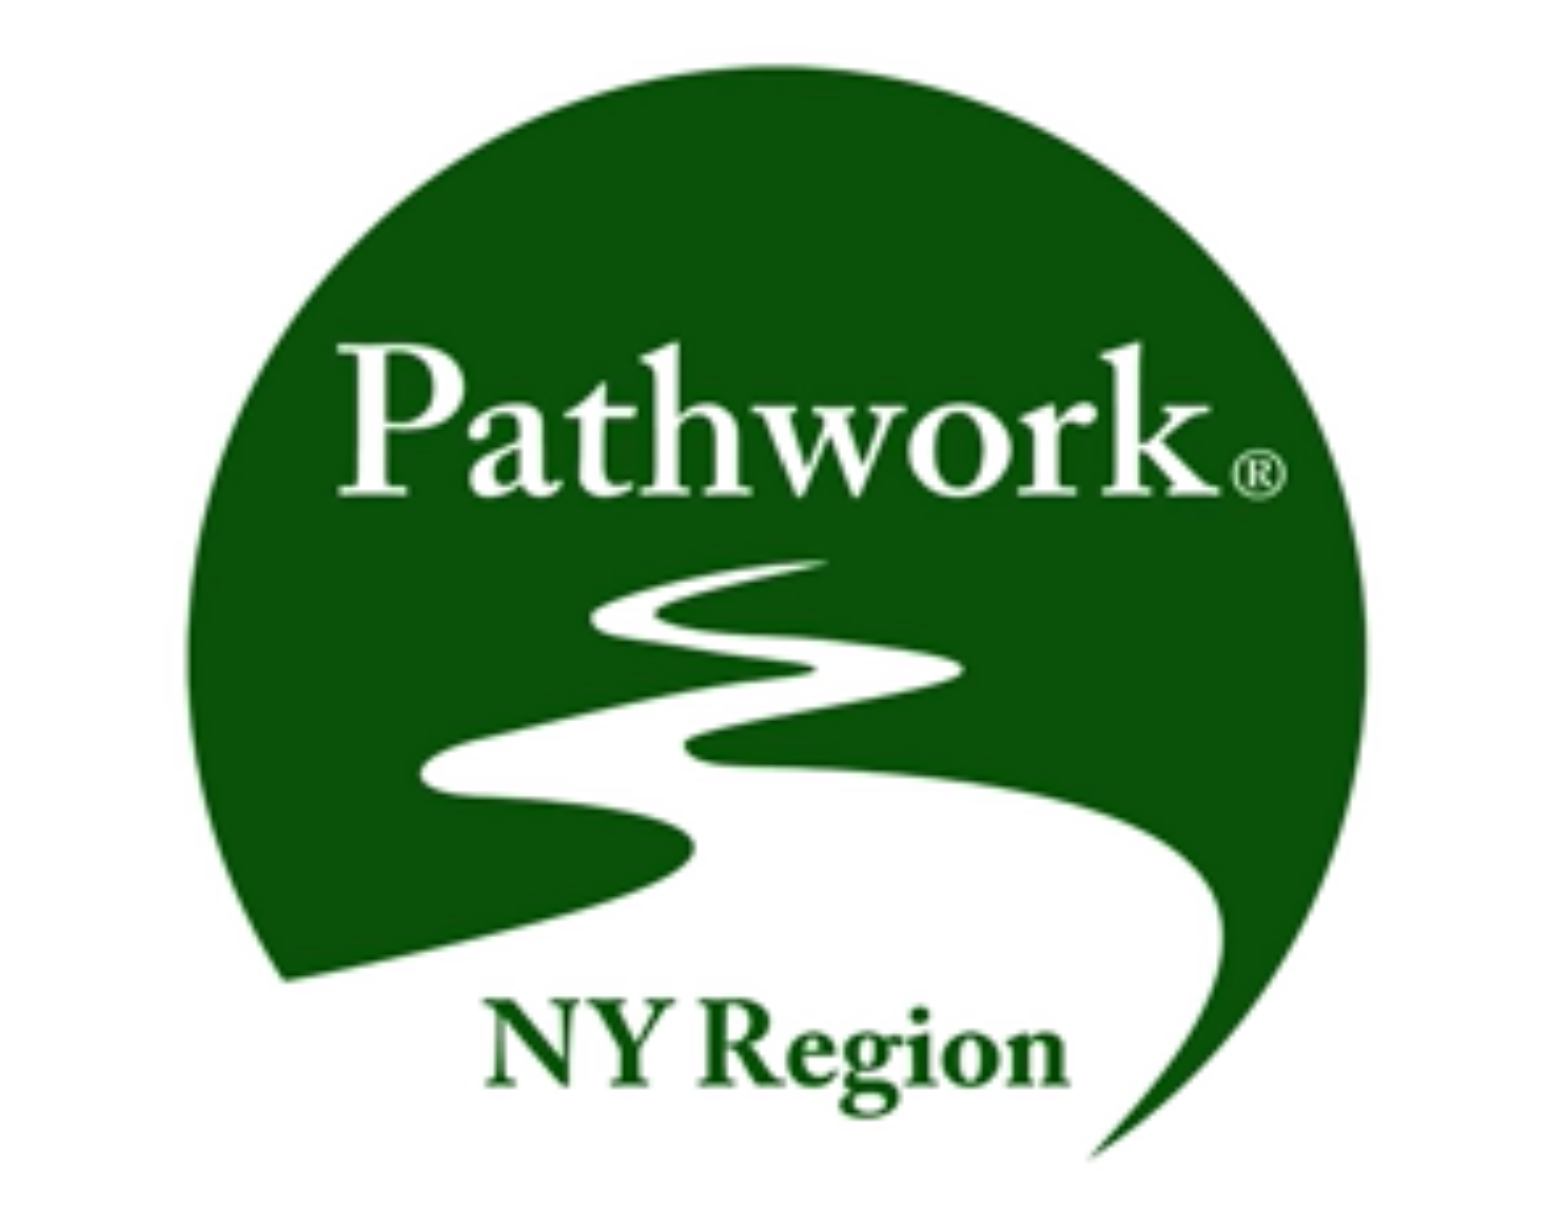 NYPathwork.org